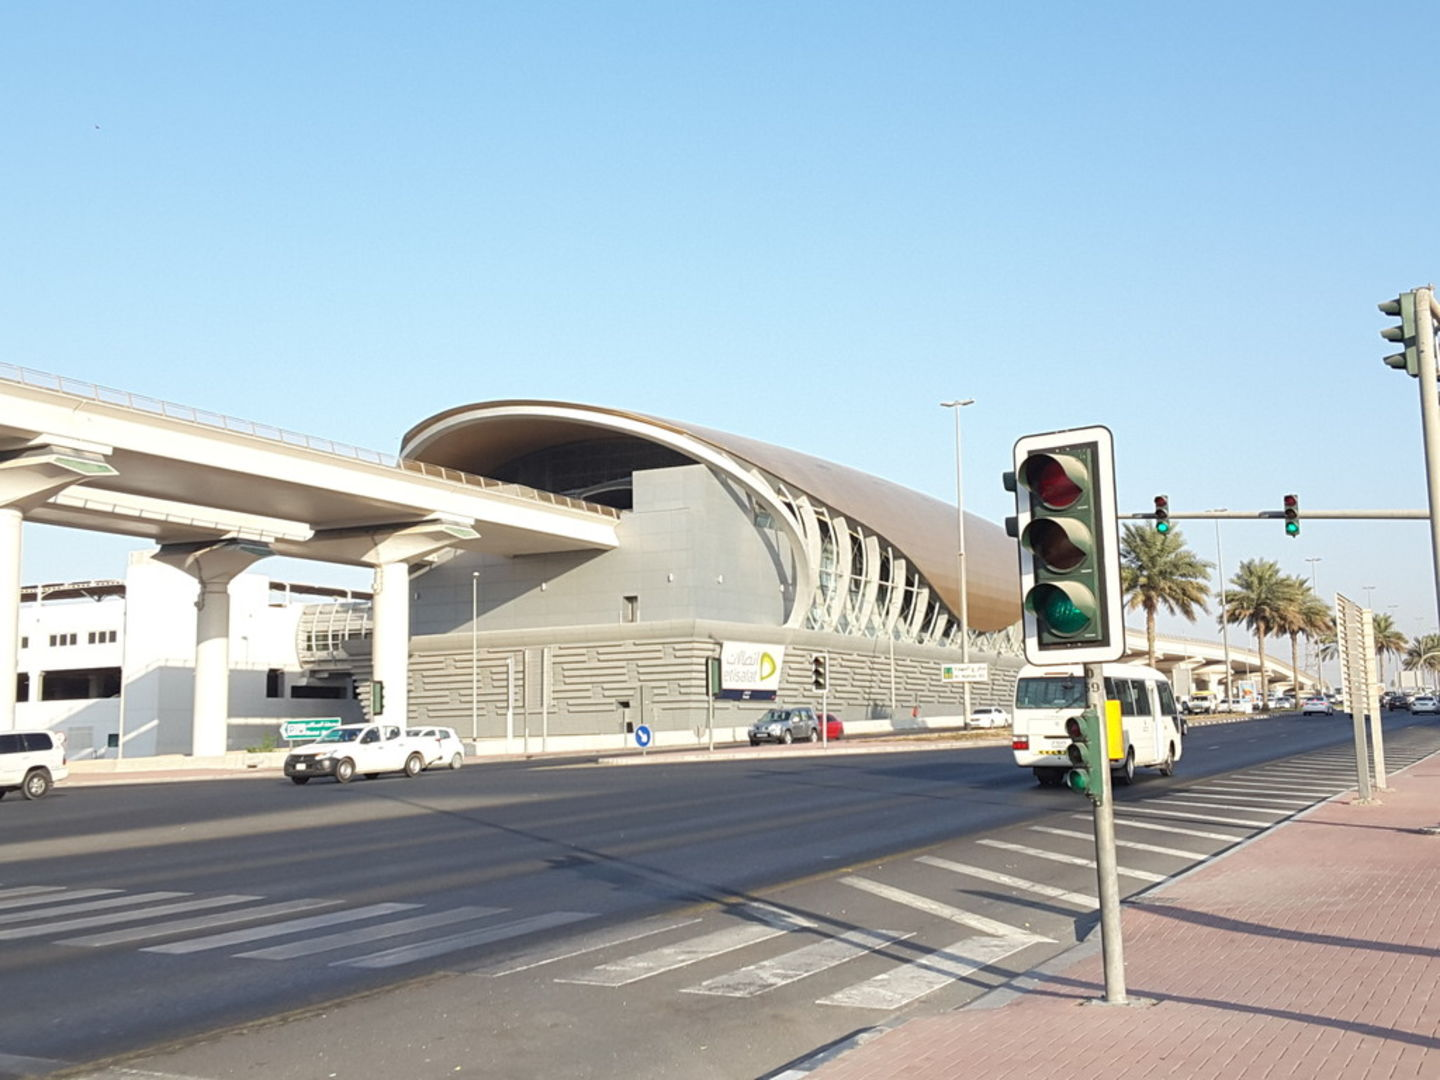 HiDubai-business-etisalat-metro-station-transport-vehicle-services-public-transport-al-twar-3-dubai-2